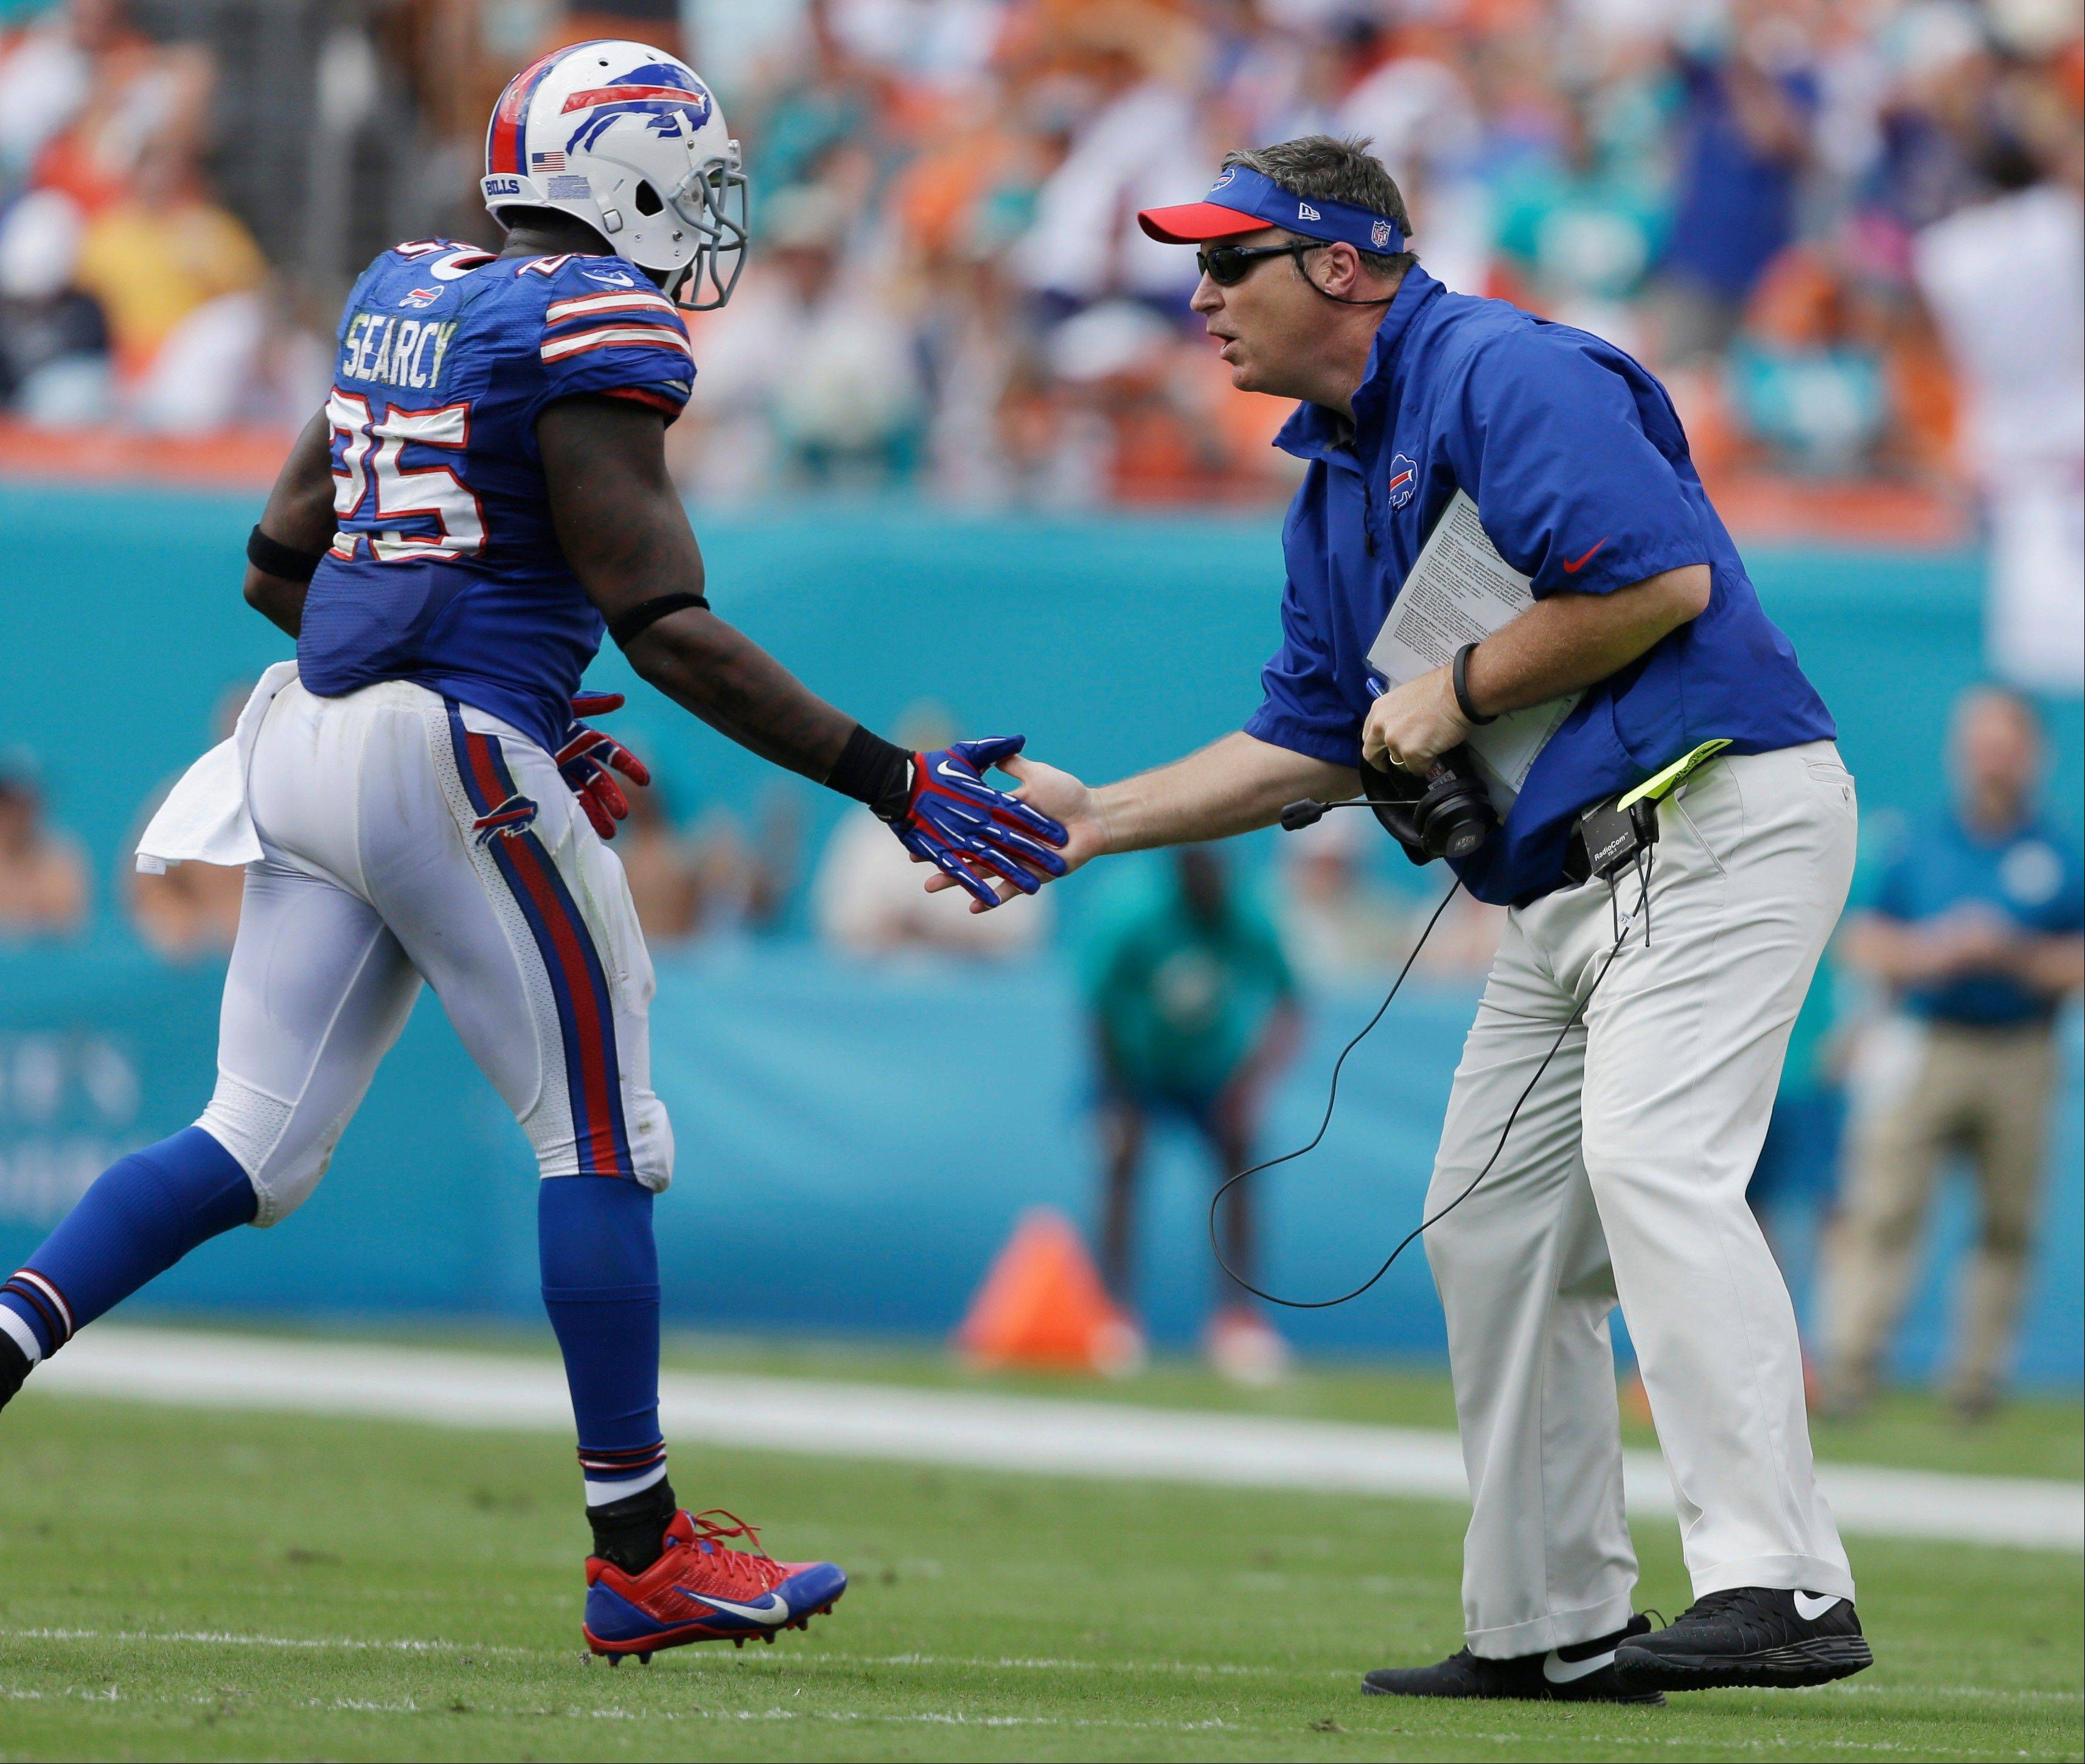 Buffalo Bills head coach Doug Marrone greets Buffalo Bills strong safety Da'Norris Searcy (25) after a play during the first half of an NFL football game against the Miami Dolphins, Sunday, Oct. 20, 2013, in Miami Gardens, Fla.